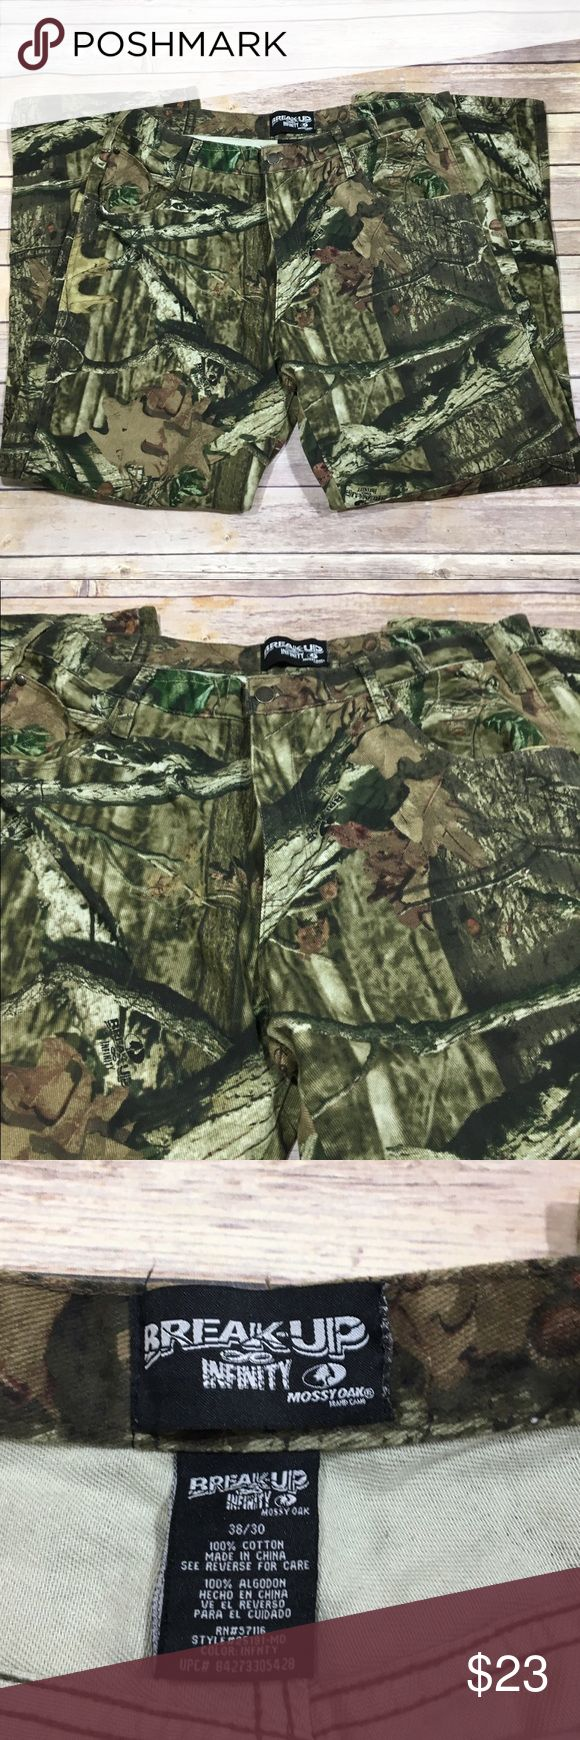 MOSSY OAK Breakup Infinity Mens Camo Pants, 38/30 MOSSY OAK Breakup Infinity Mens Camo Tree Stand Hunting Pants  Size: 38/30 100% Cotton RN# 51116 Style# 25191-MO Color: INFNTY UPC# 84273305428 Made in China Excellent Used Condition Mossy Oak Pants